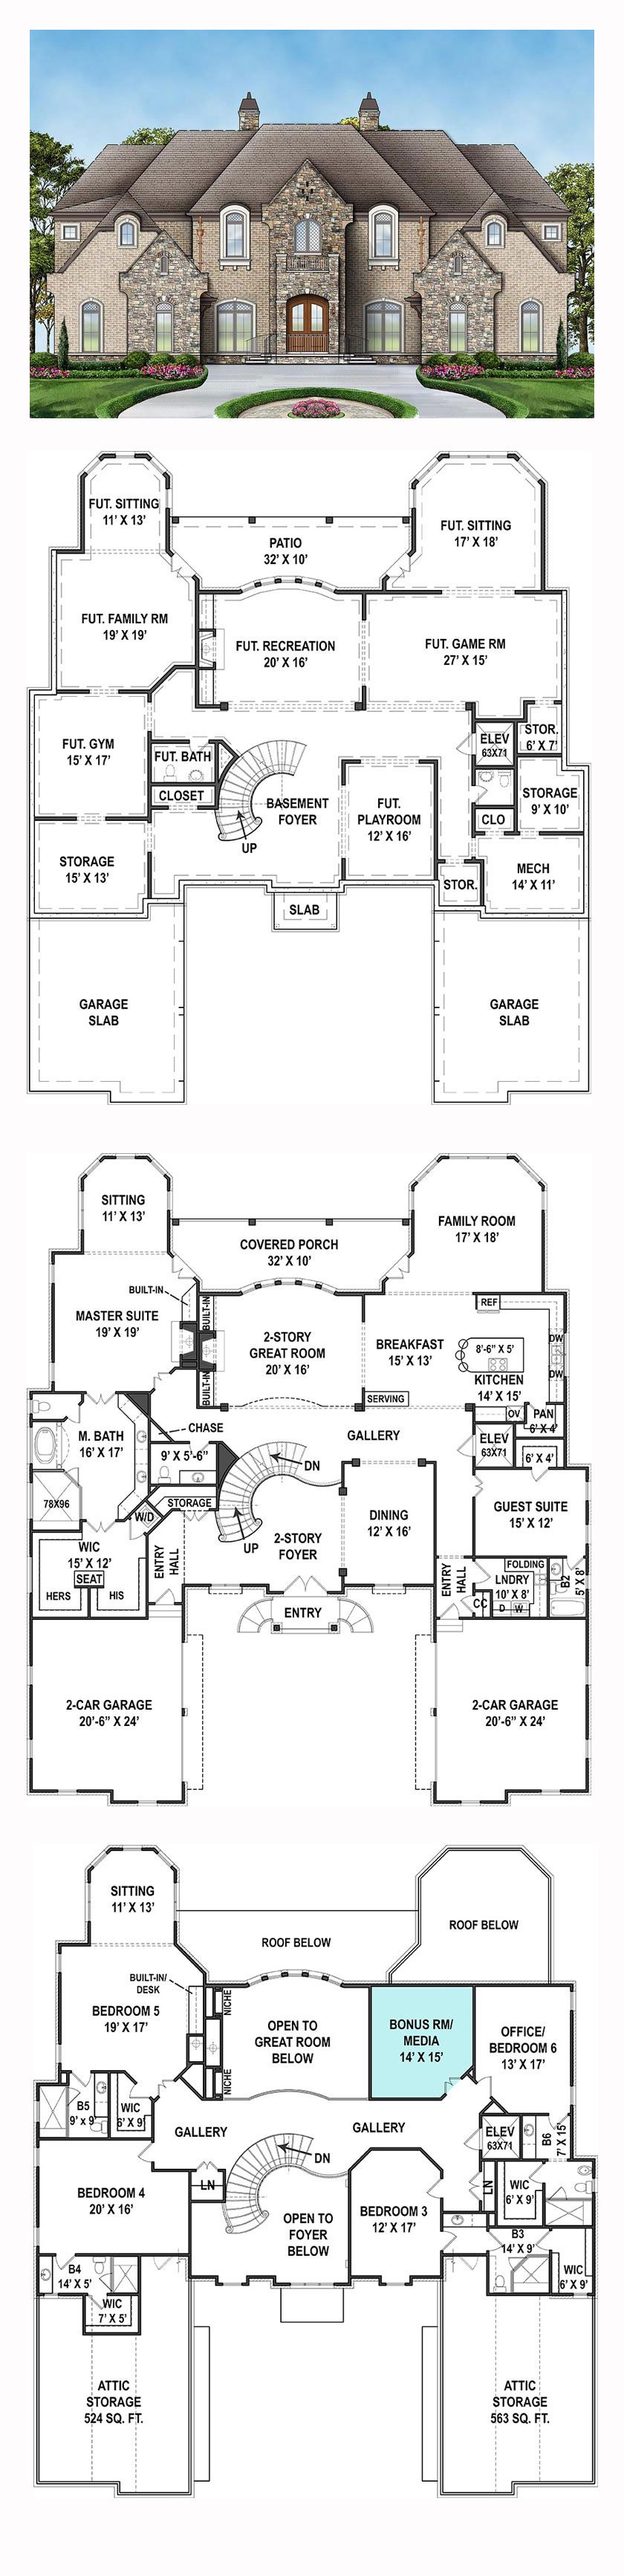 6 Room House Plan Beautiful French Country Style House Plan with 6 Bed 7 Bath